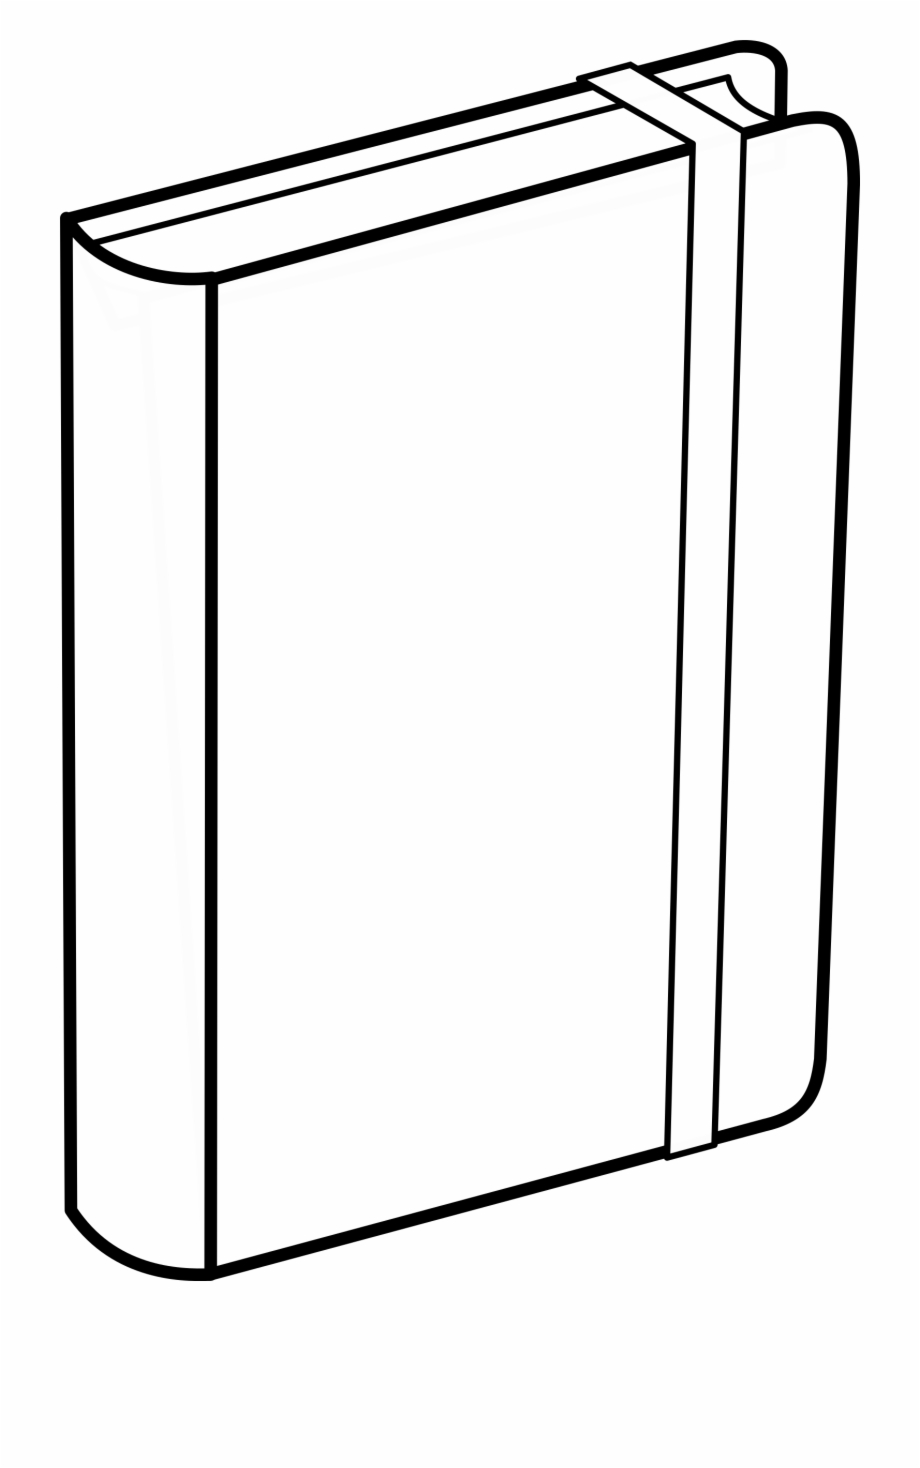 Notebook clipart rectangle.